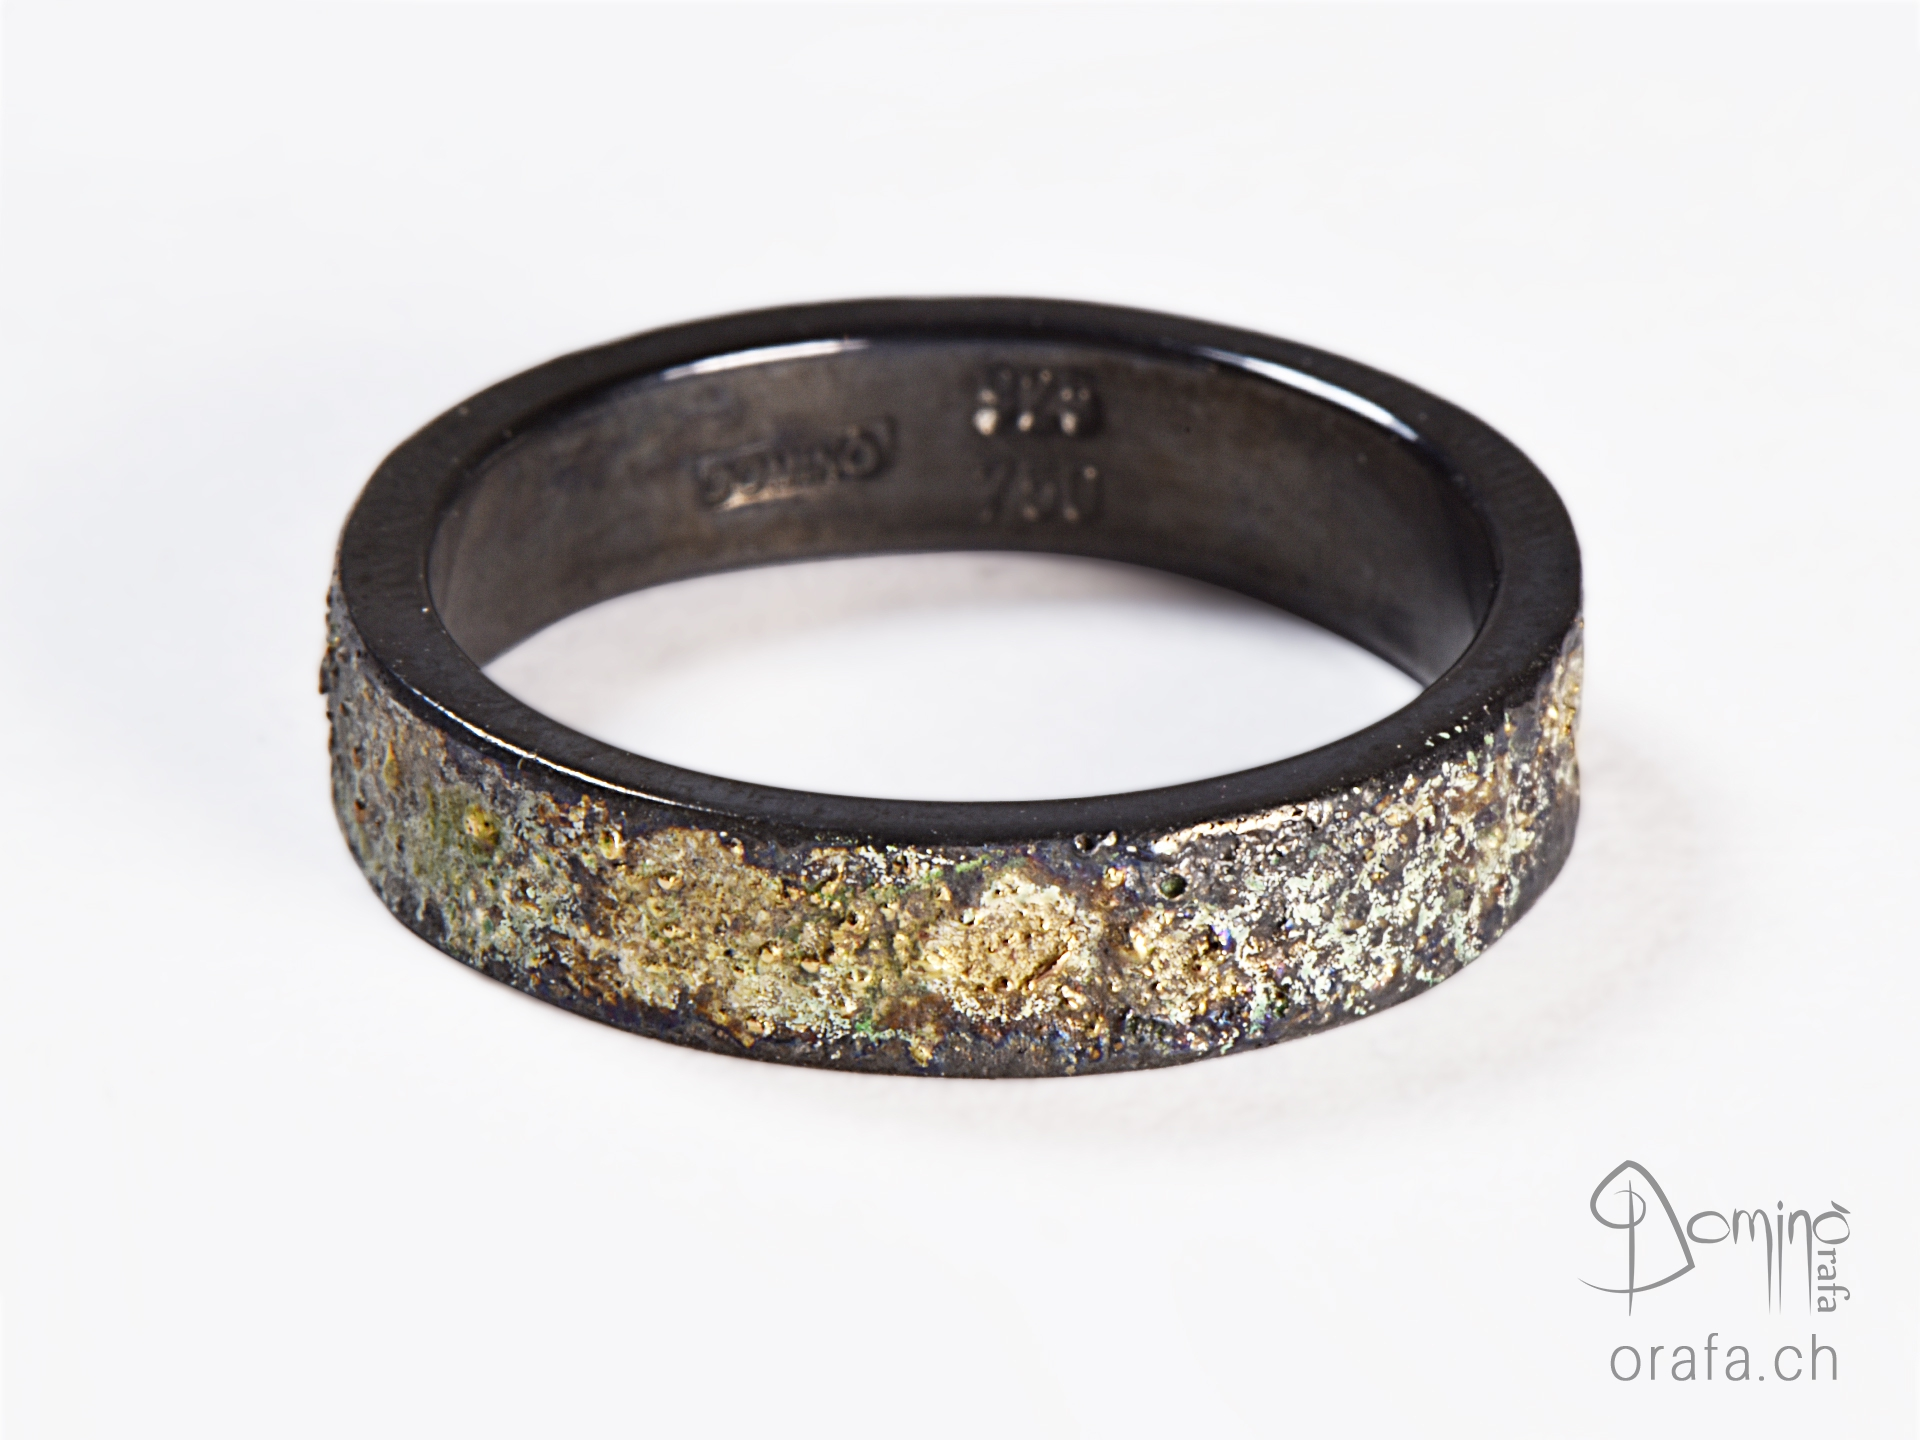 Oxidized silver ring and yellow gold